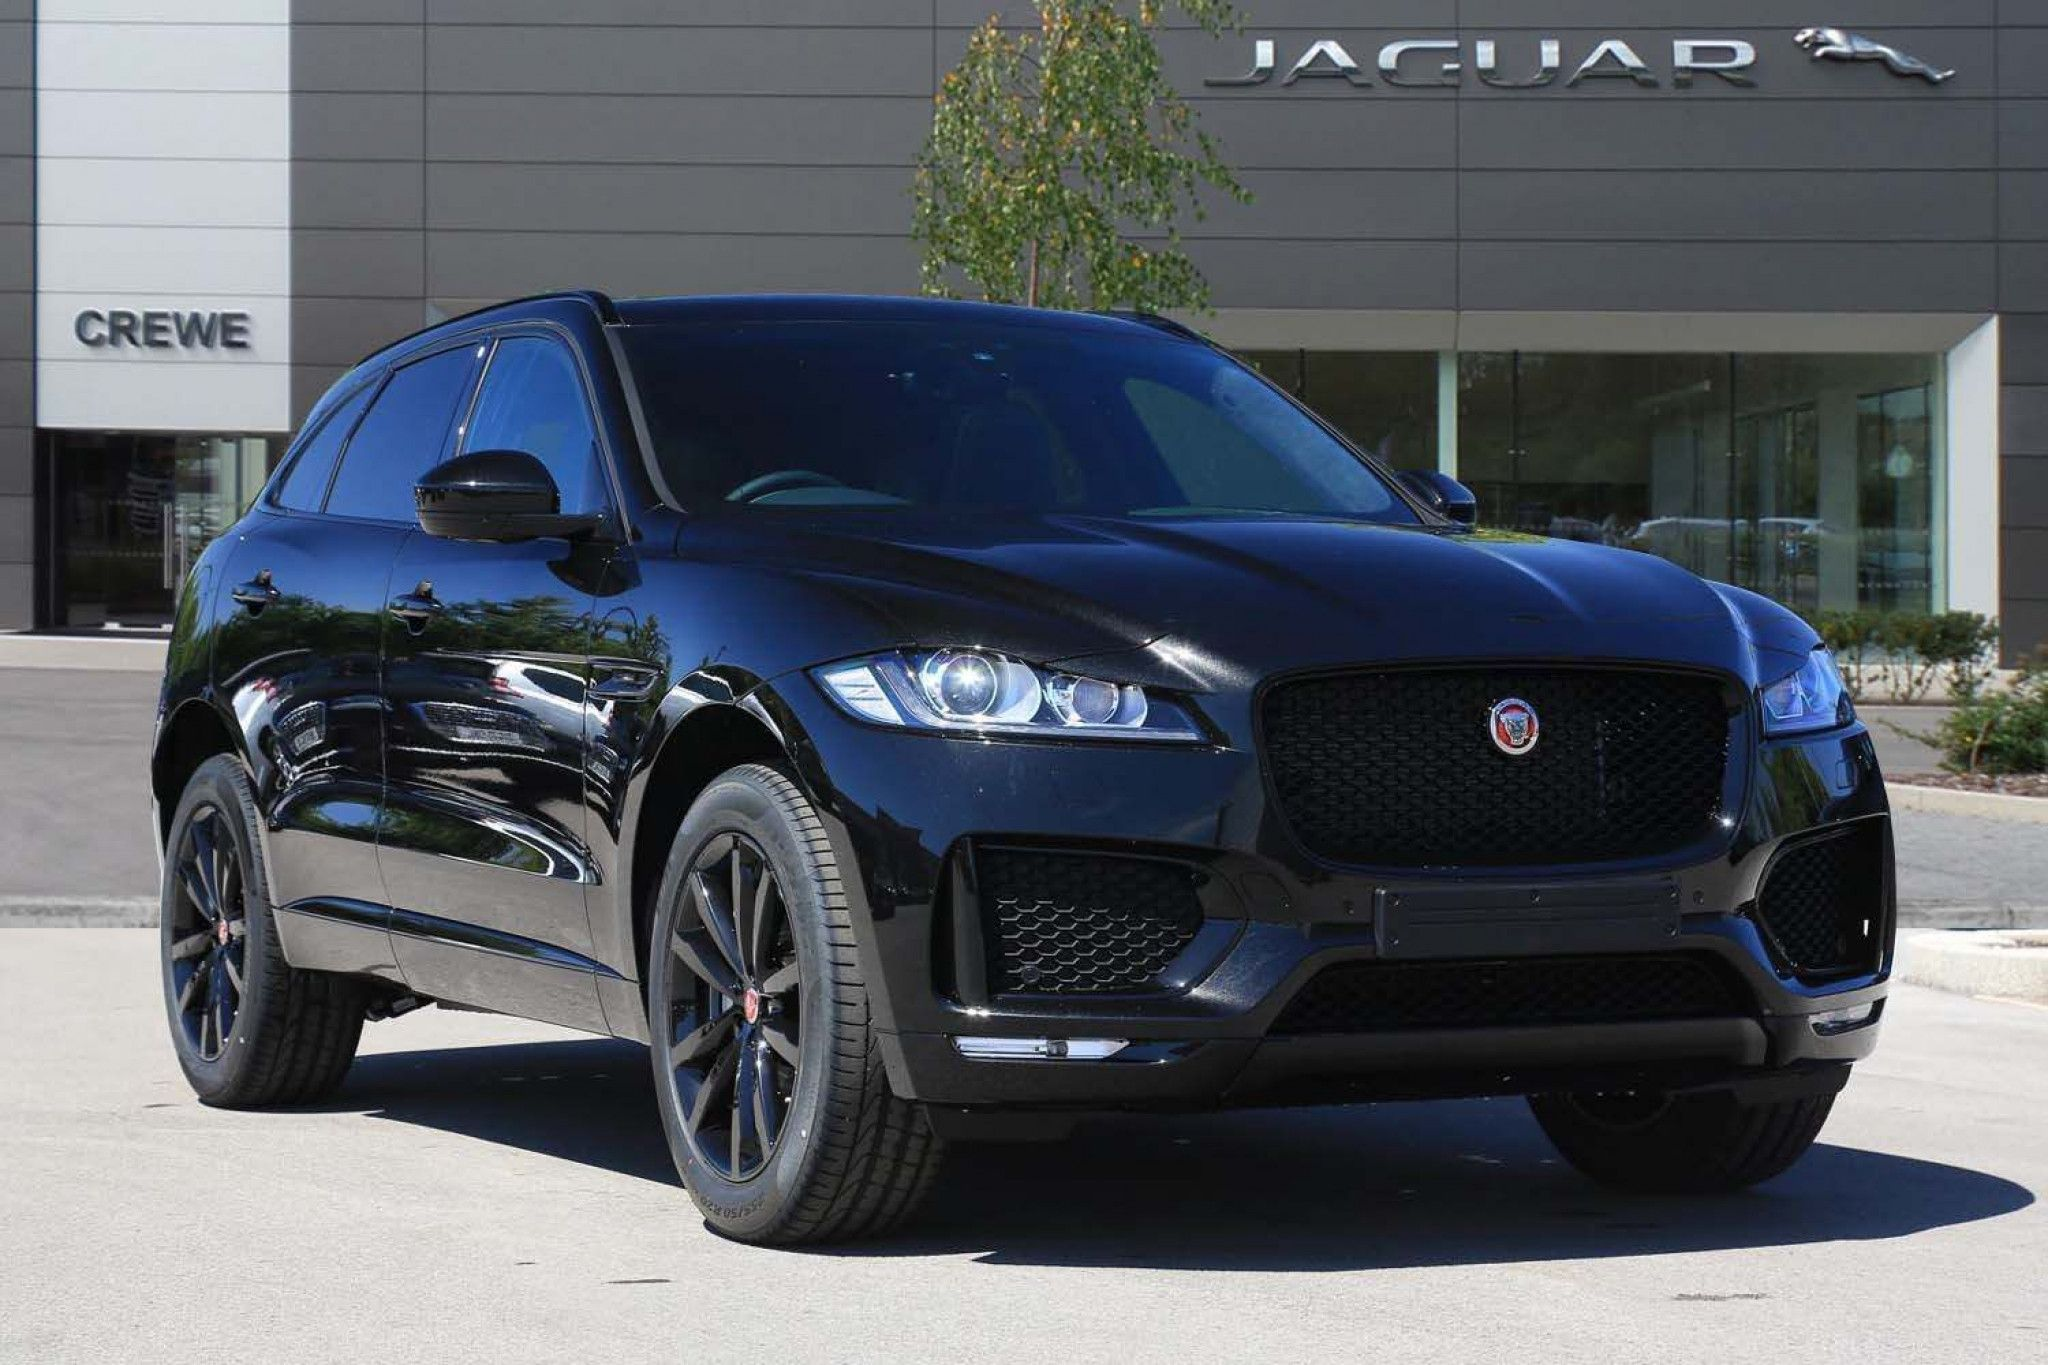 Jaguar F Pace 2 0d Chequered Flag Auto Awd S S 5dr For Sale Jaguar Pace Jaguar Suv Jaguar Car